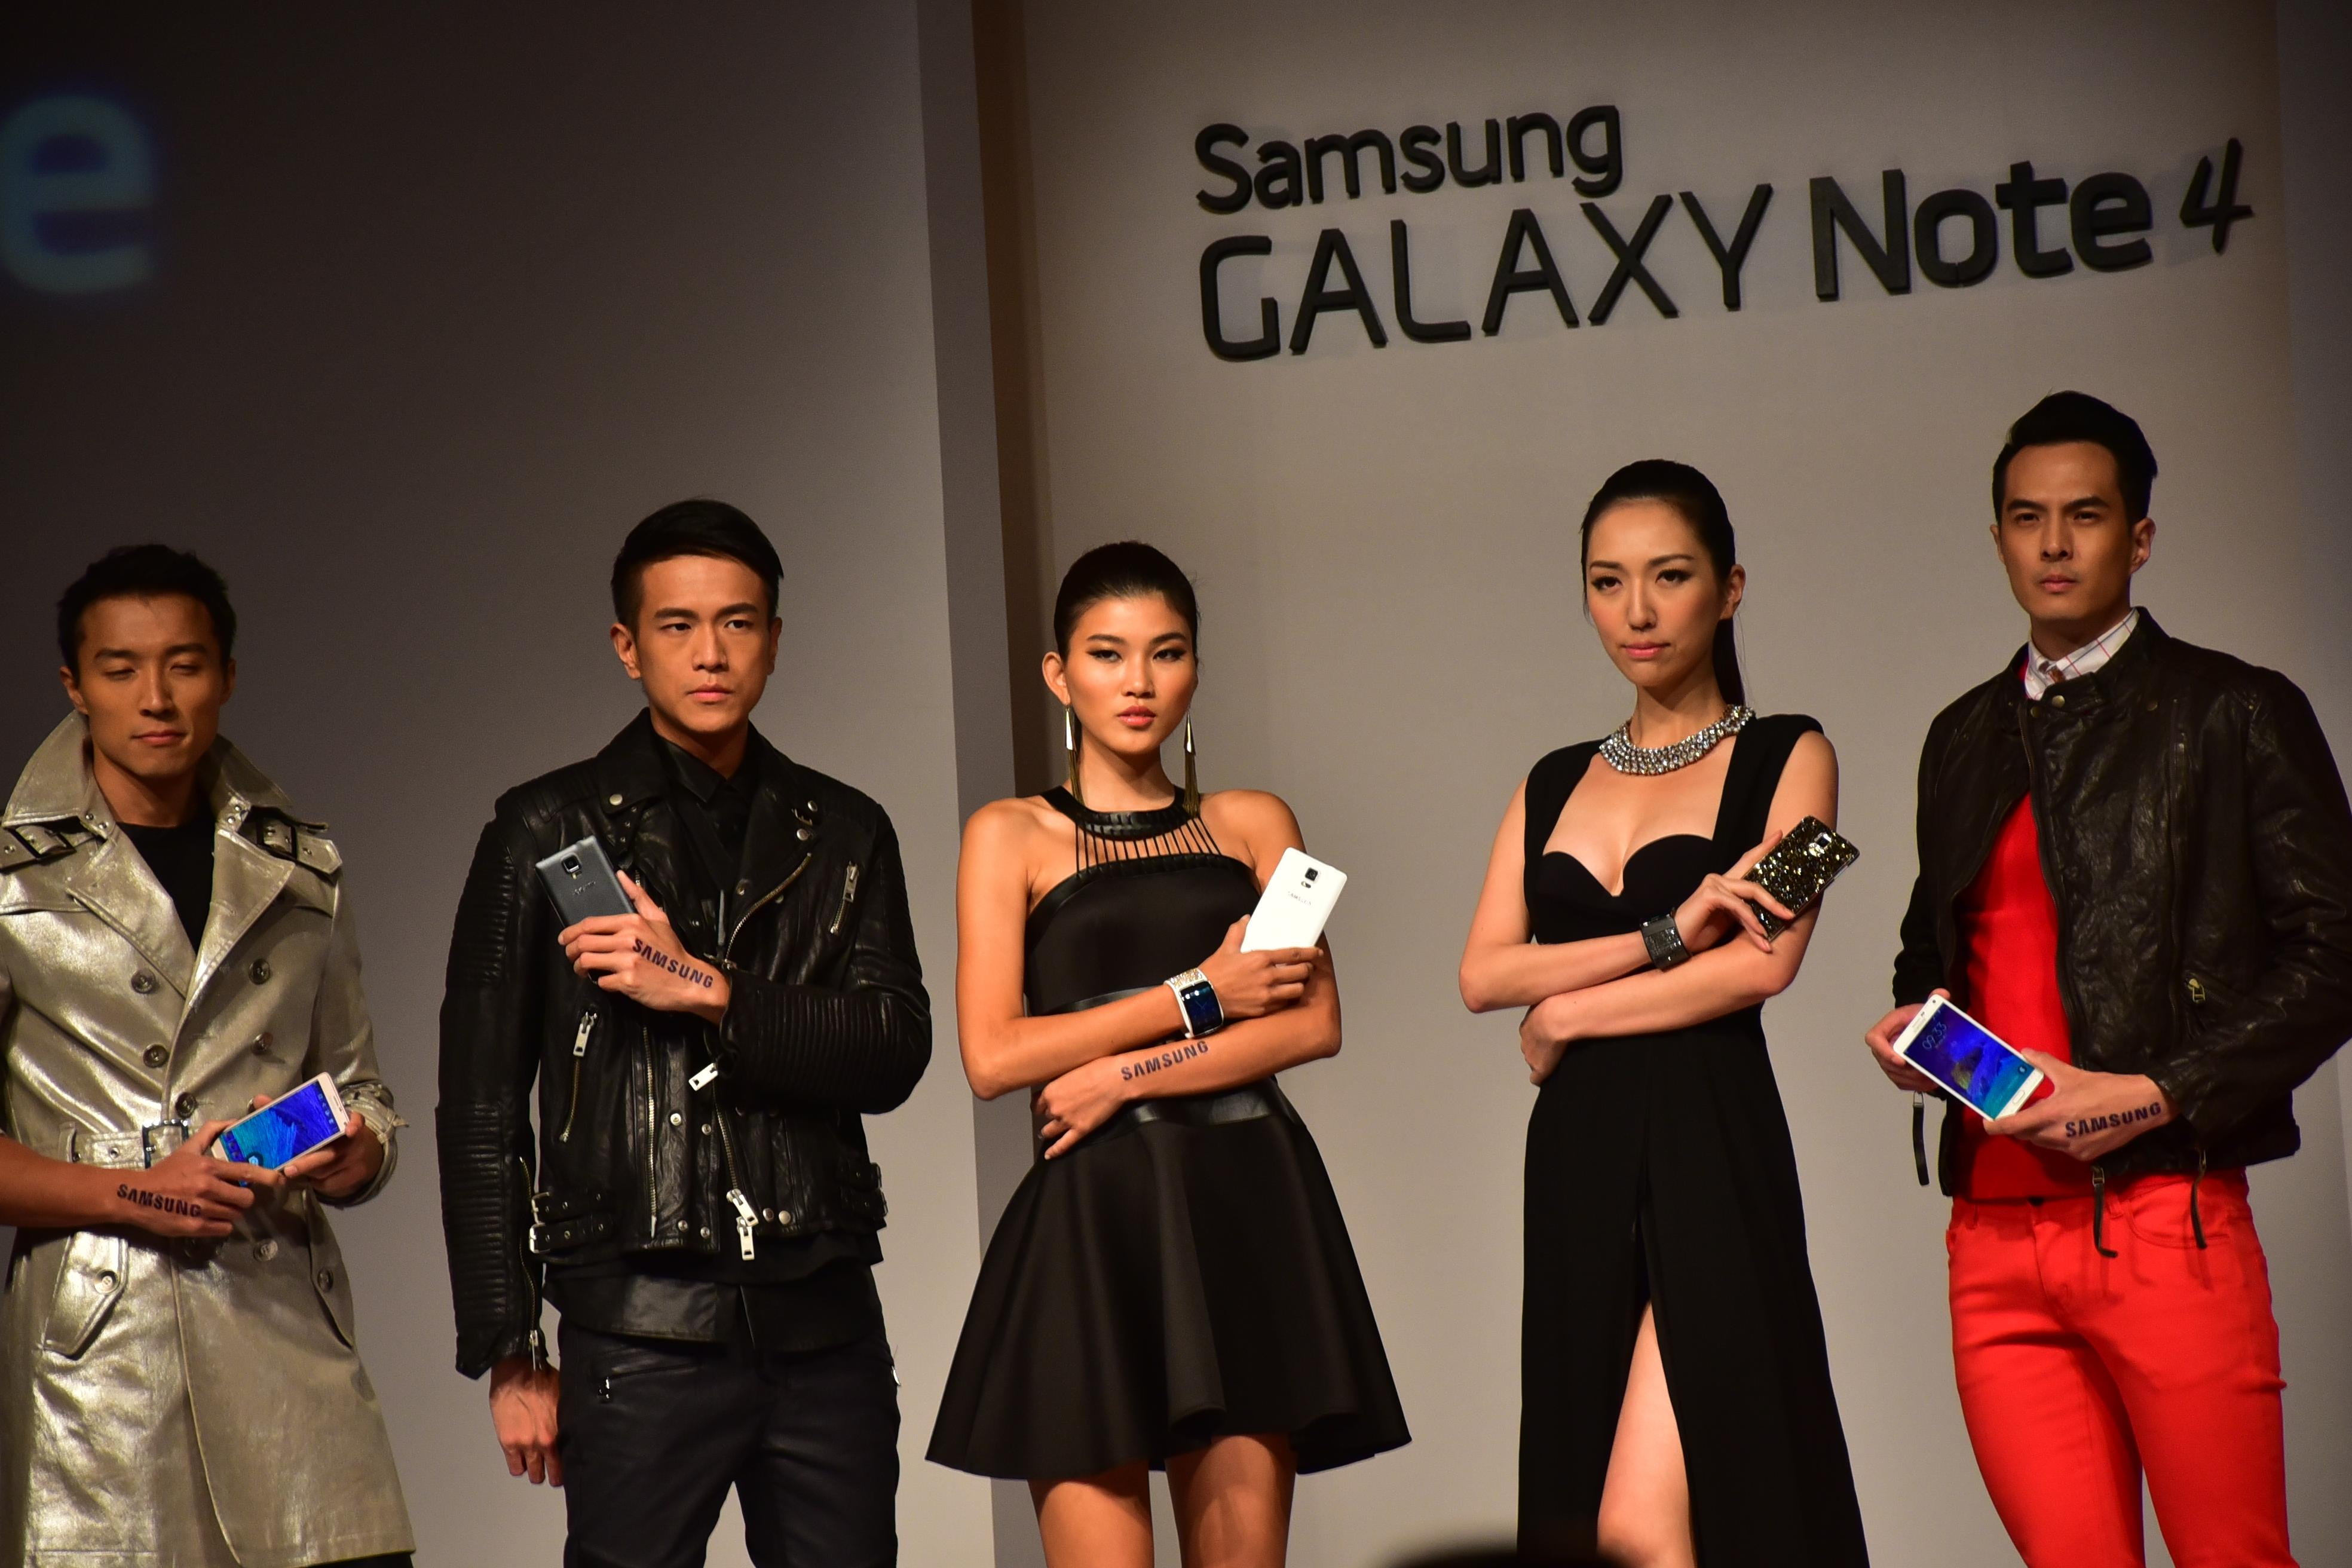 SAMSUNG GALAXY Note 4 with 歌后 蔡依林 !! - XFastest - DSC_2351.JPG